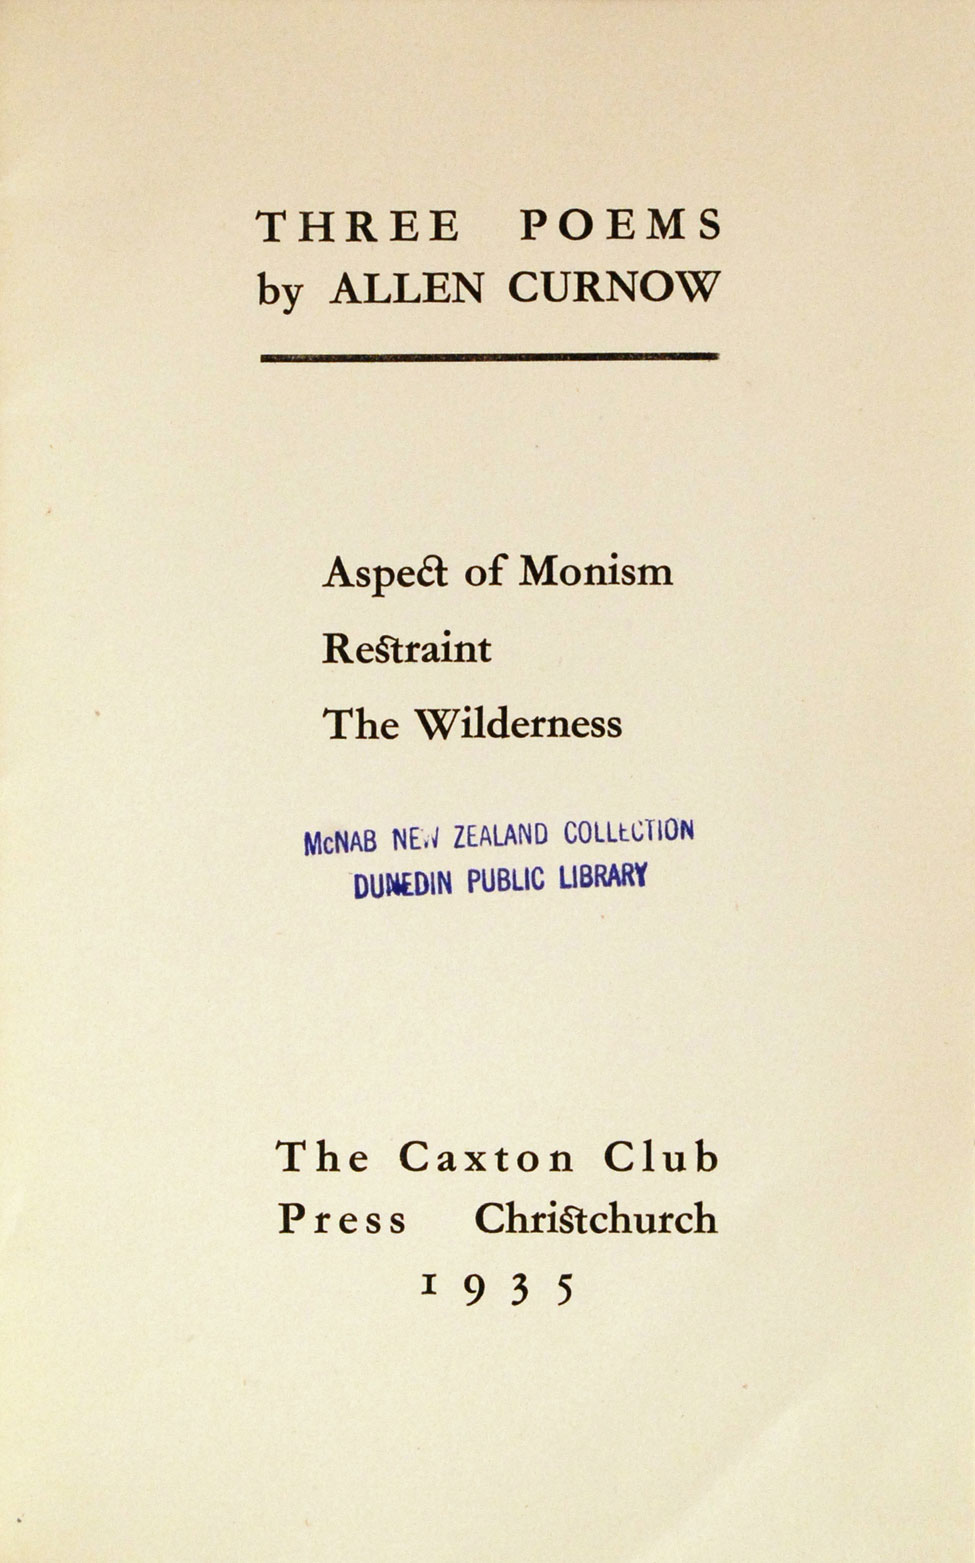 Allen Curnow. Three Poems … Aspect of Monism, Restraint, the Wilderness. <i>Christchurch: The Caxton Club Press, 1935.</i>